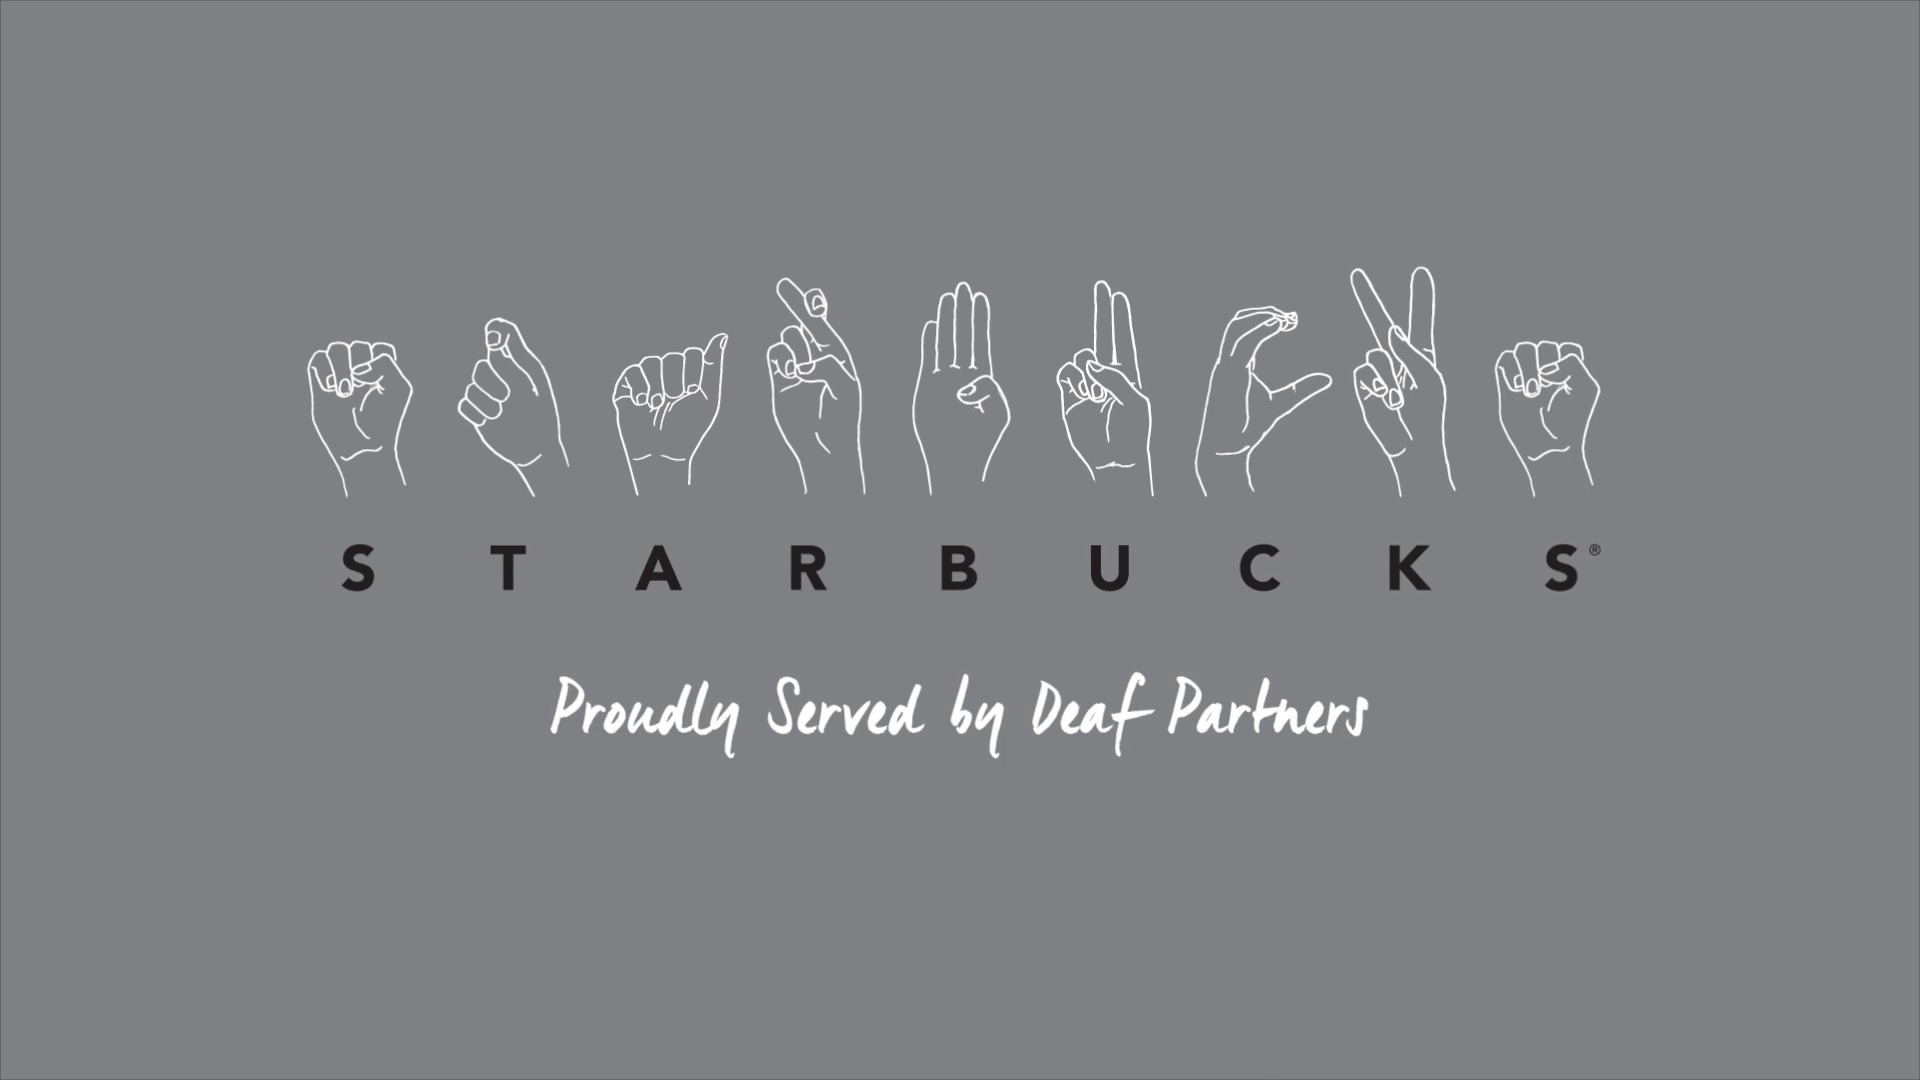 Starbucks malaysia will be opening a new store at design village mall - Deaf Partners Build Careers At Starbucks Store In Malaysia Starbucks Newsroom